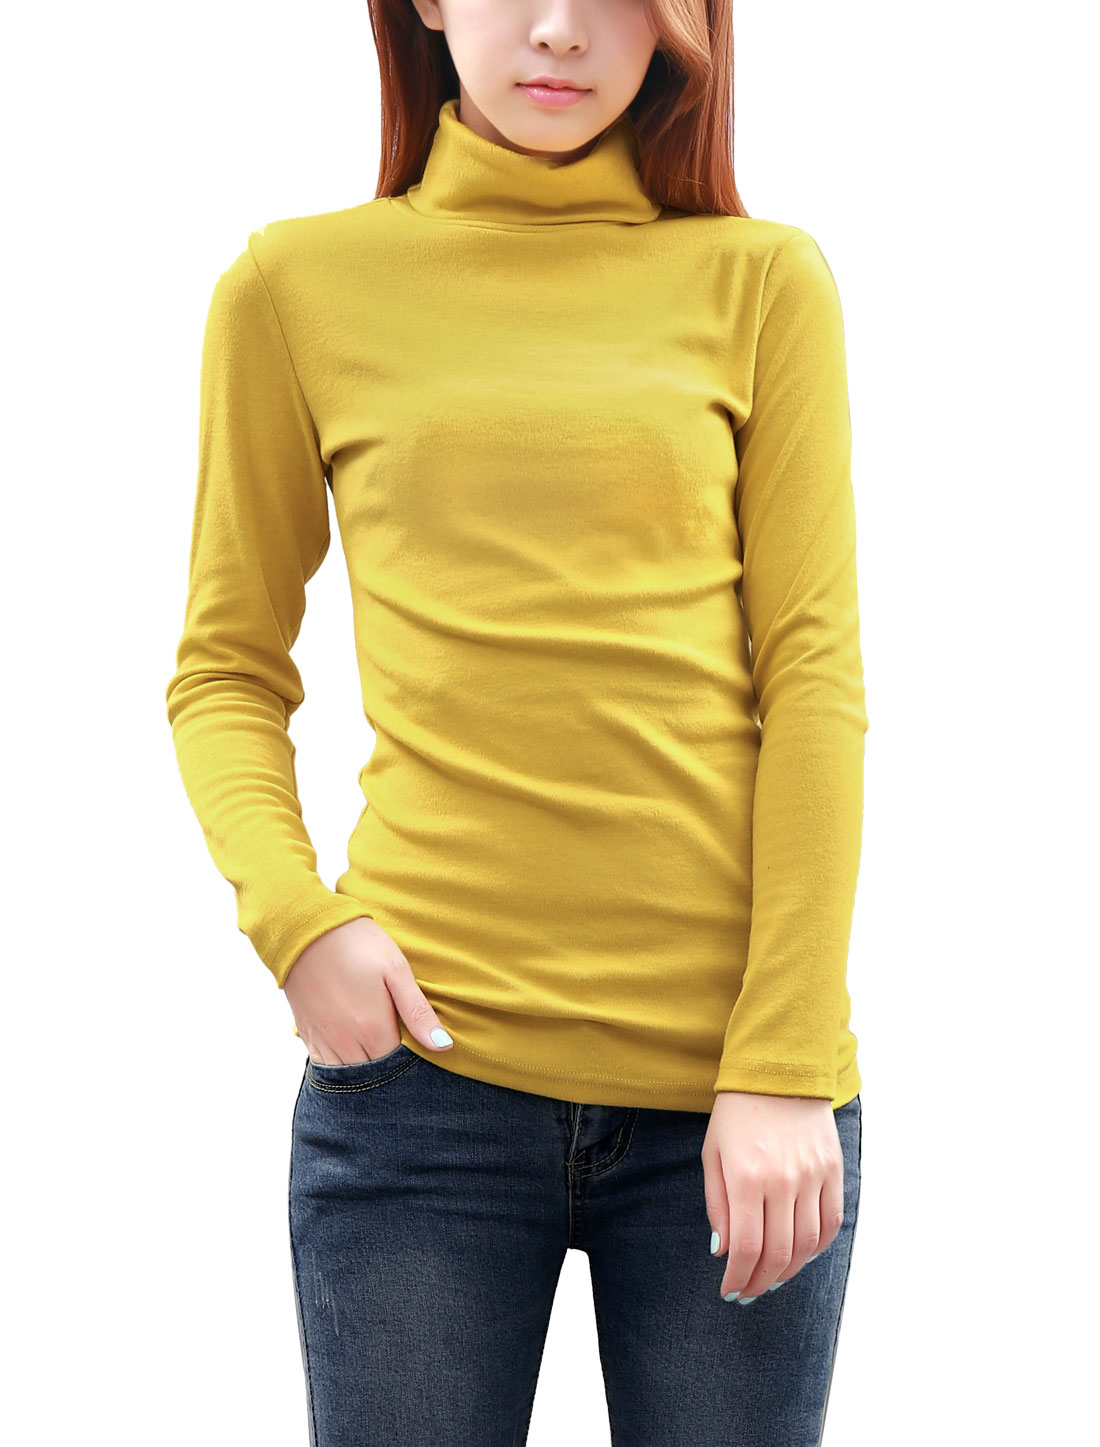 Women Cozy Fit Solid Color Long Sleeve Autumn Knit Top Yellow M